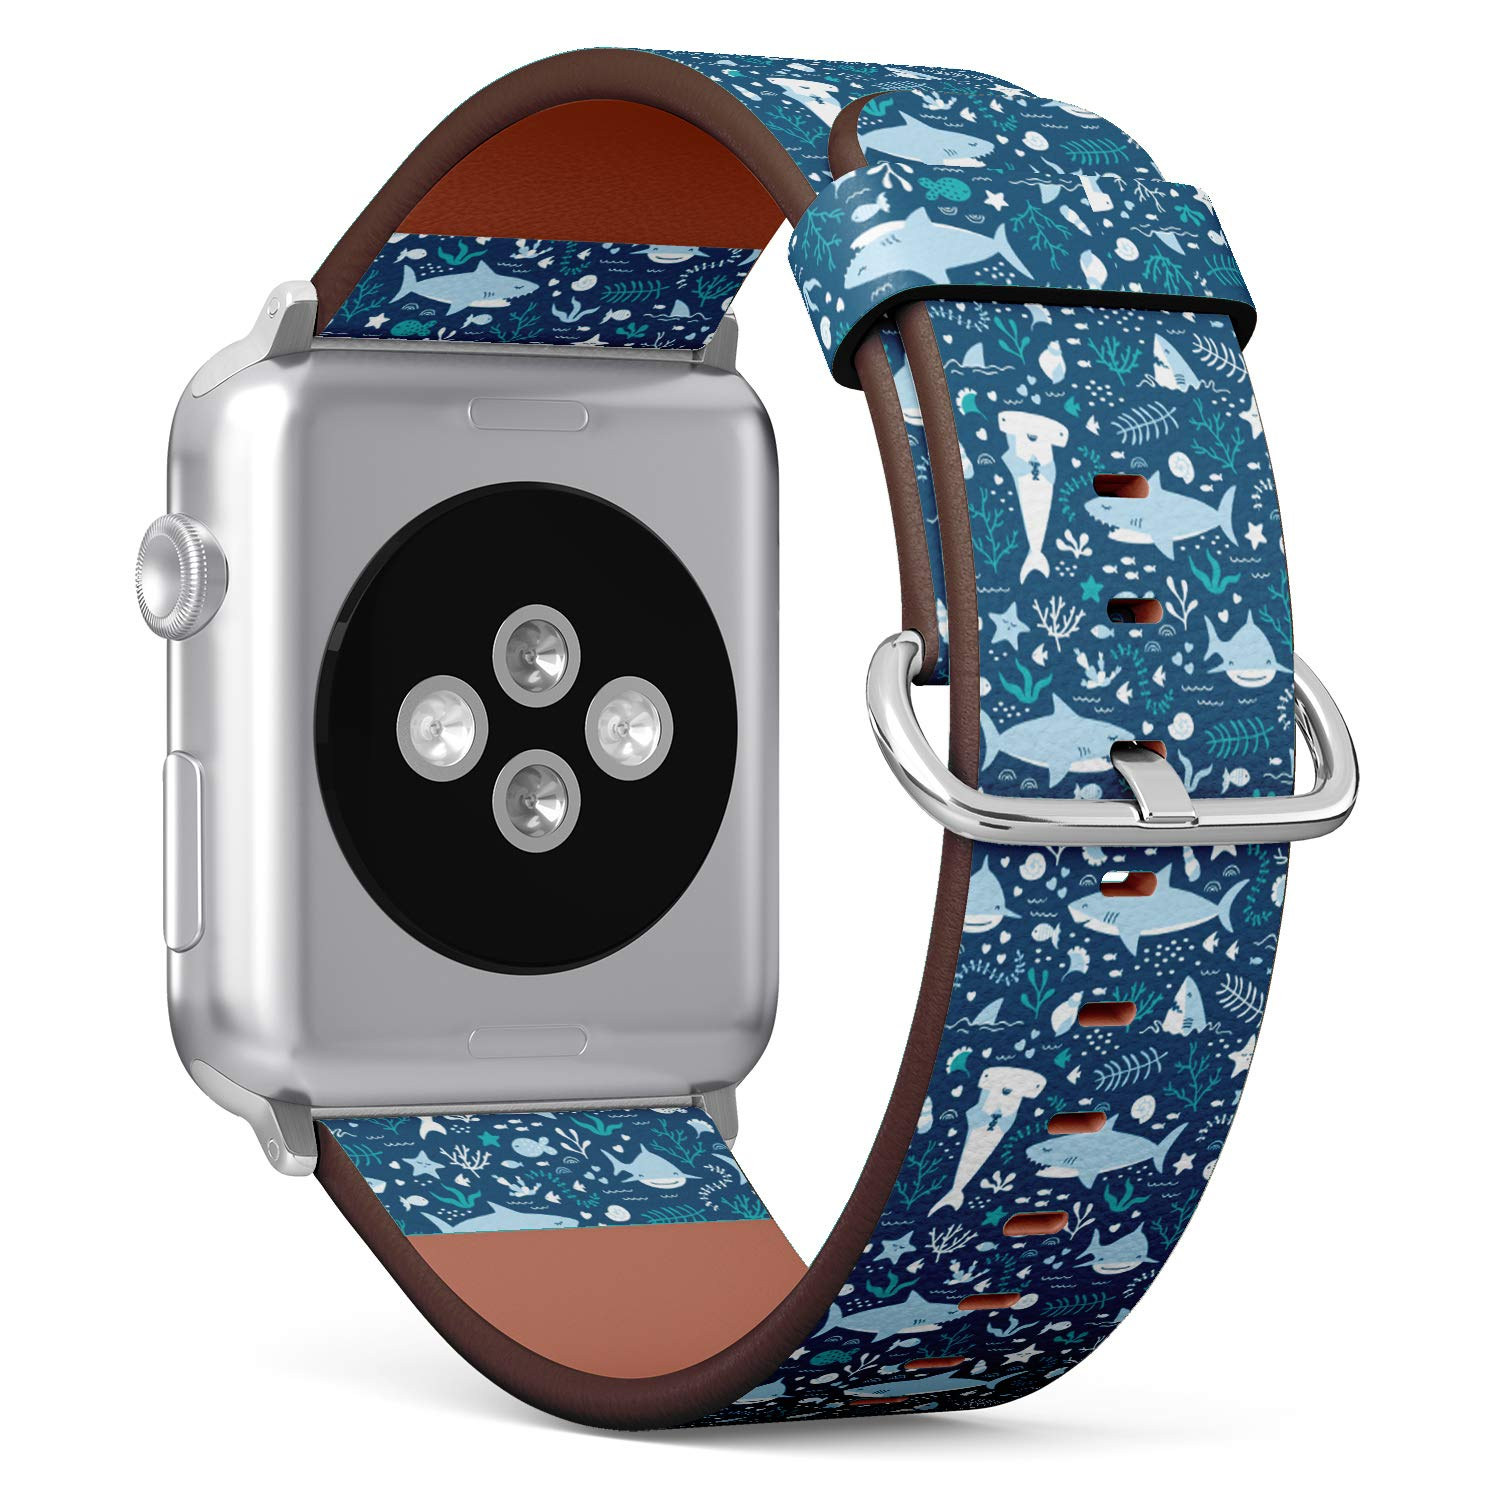 (Underwater Pattern with Cute Sharks) Patterned Leather Wristband Strap for Apple Watch Series 4/3/2/1 gen,Replacement for iWatch 38mm / 40mm Bands